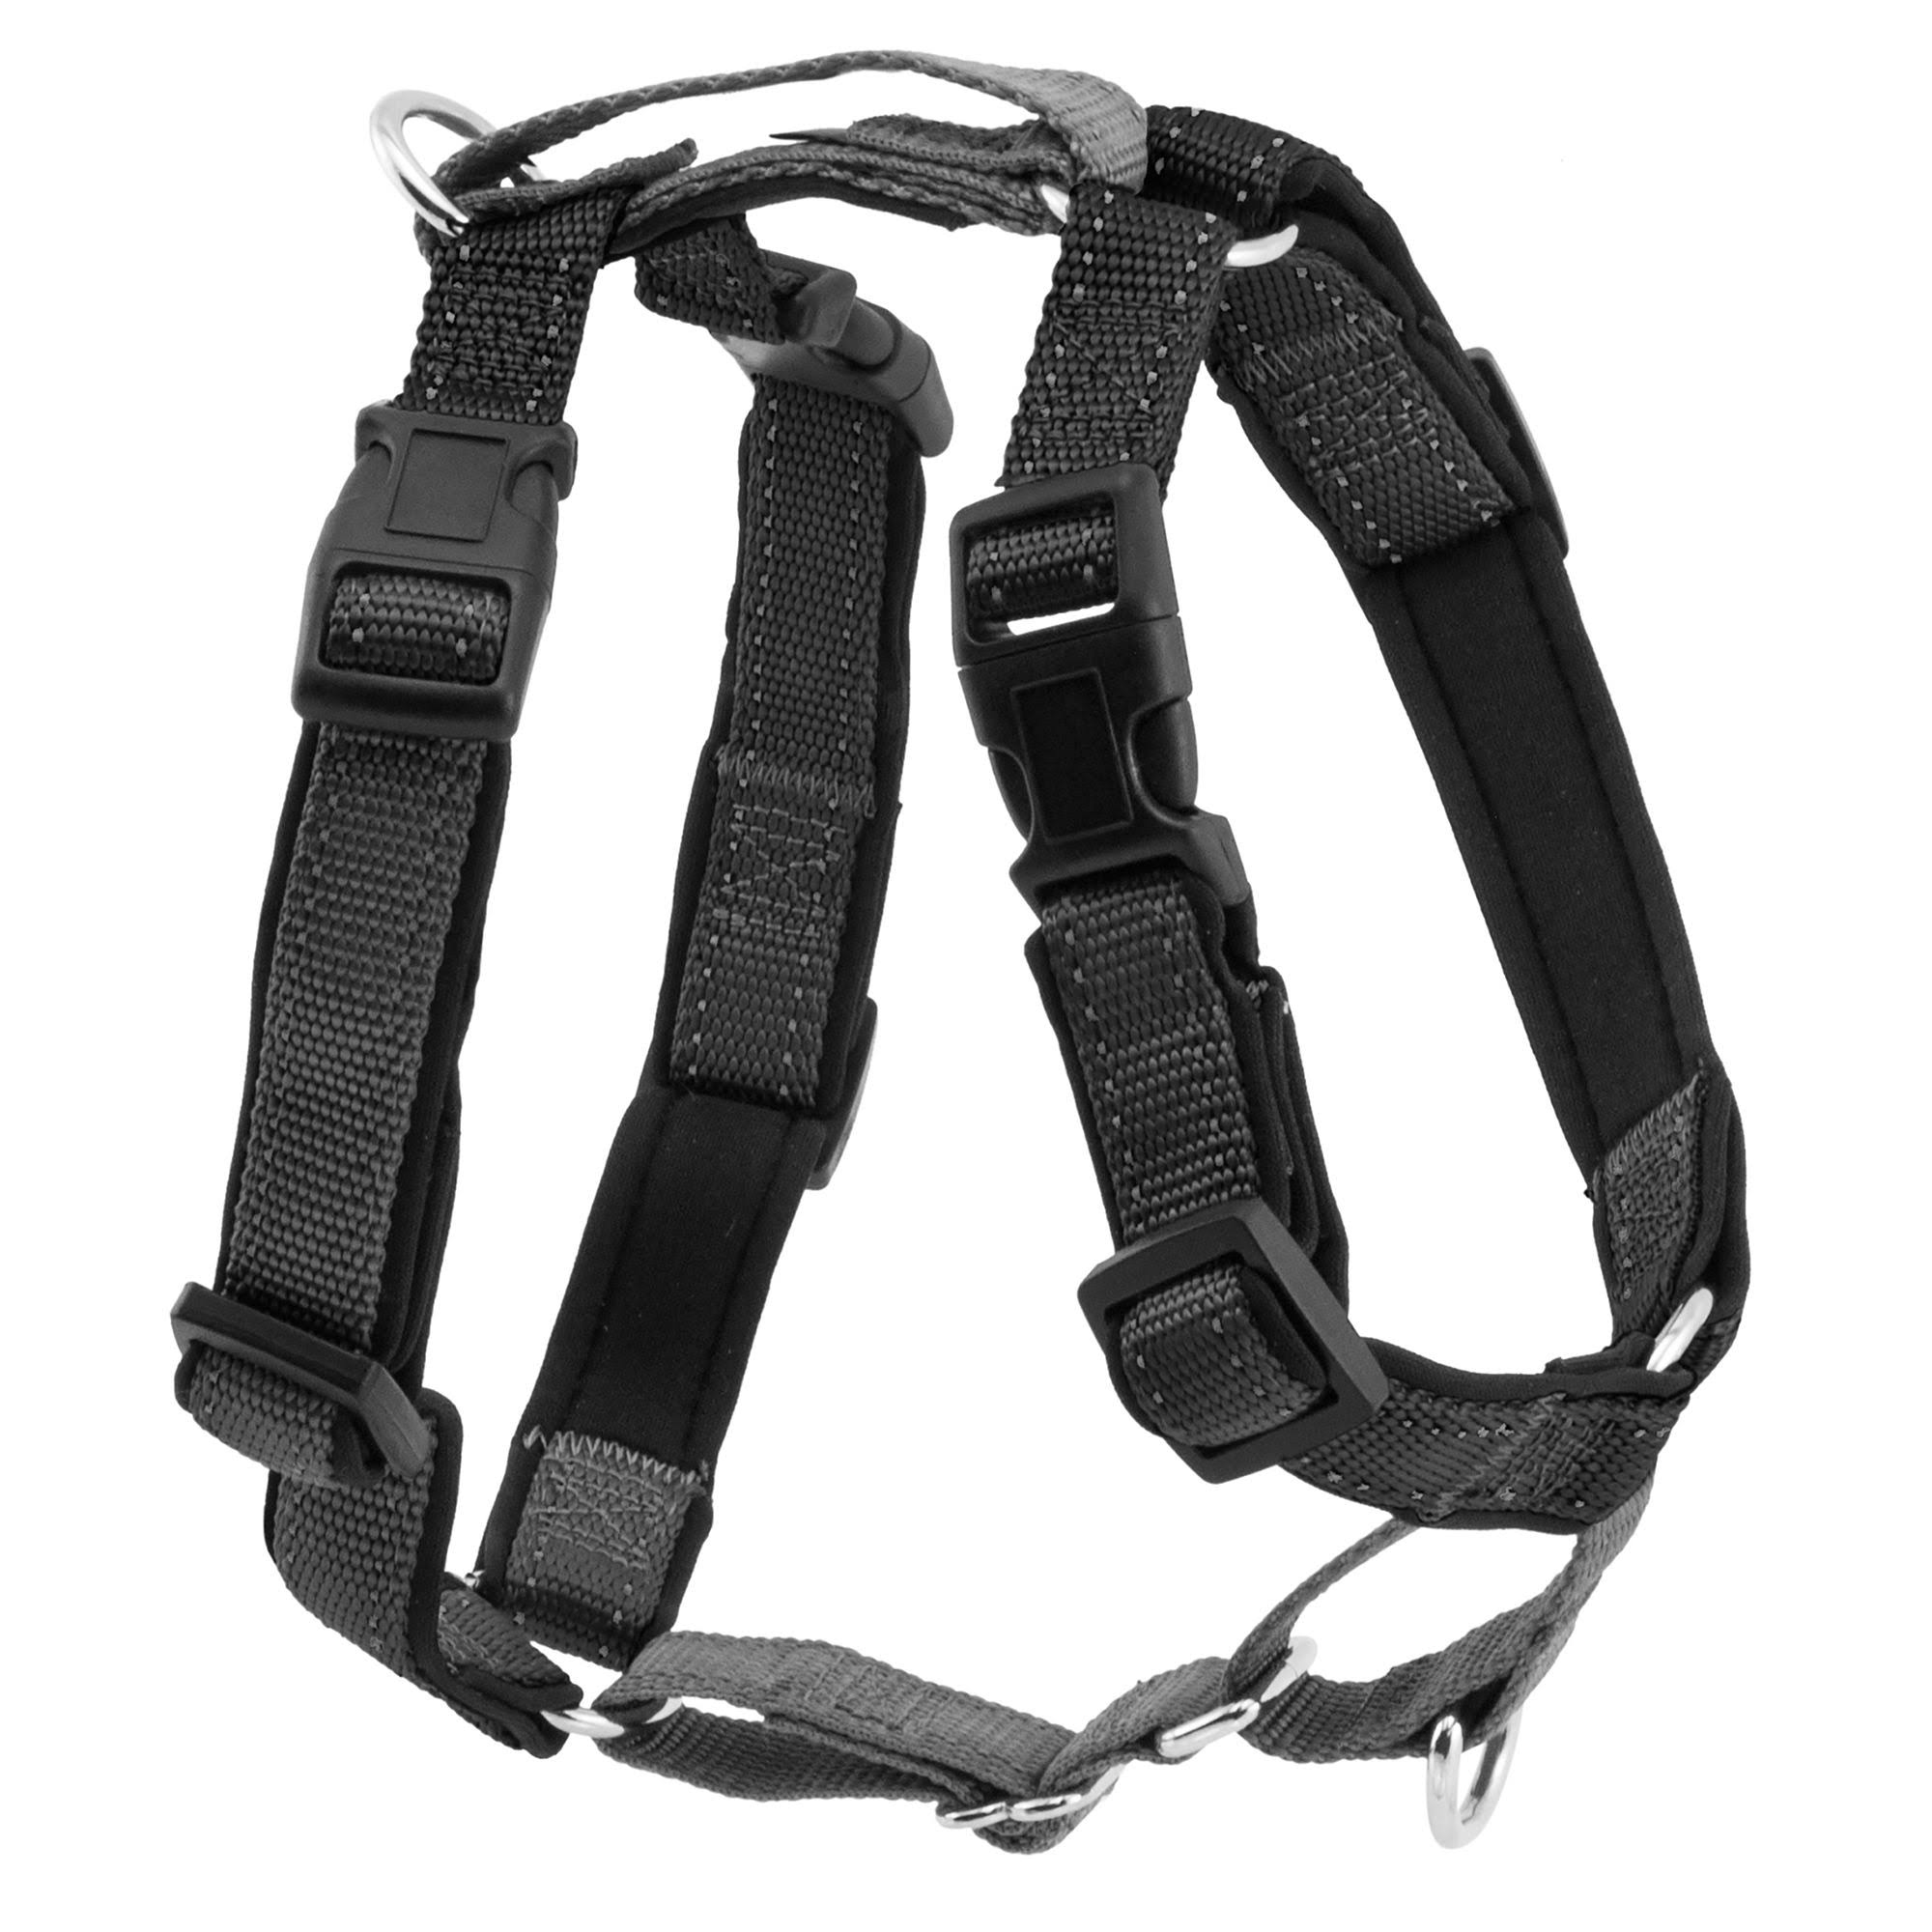 Petsafe 3 in 1 Harness - Black, Medium